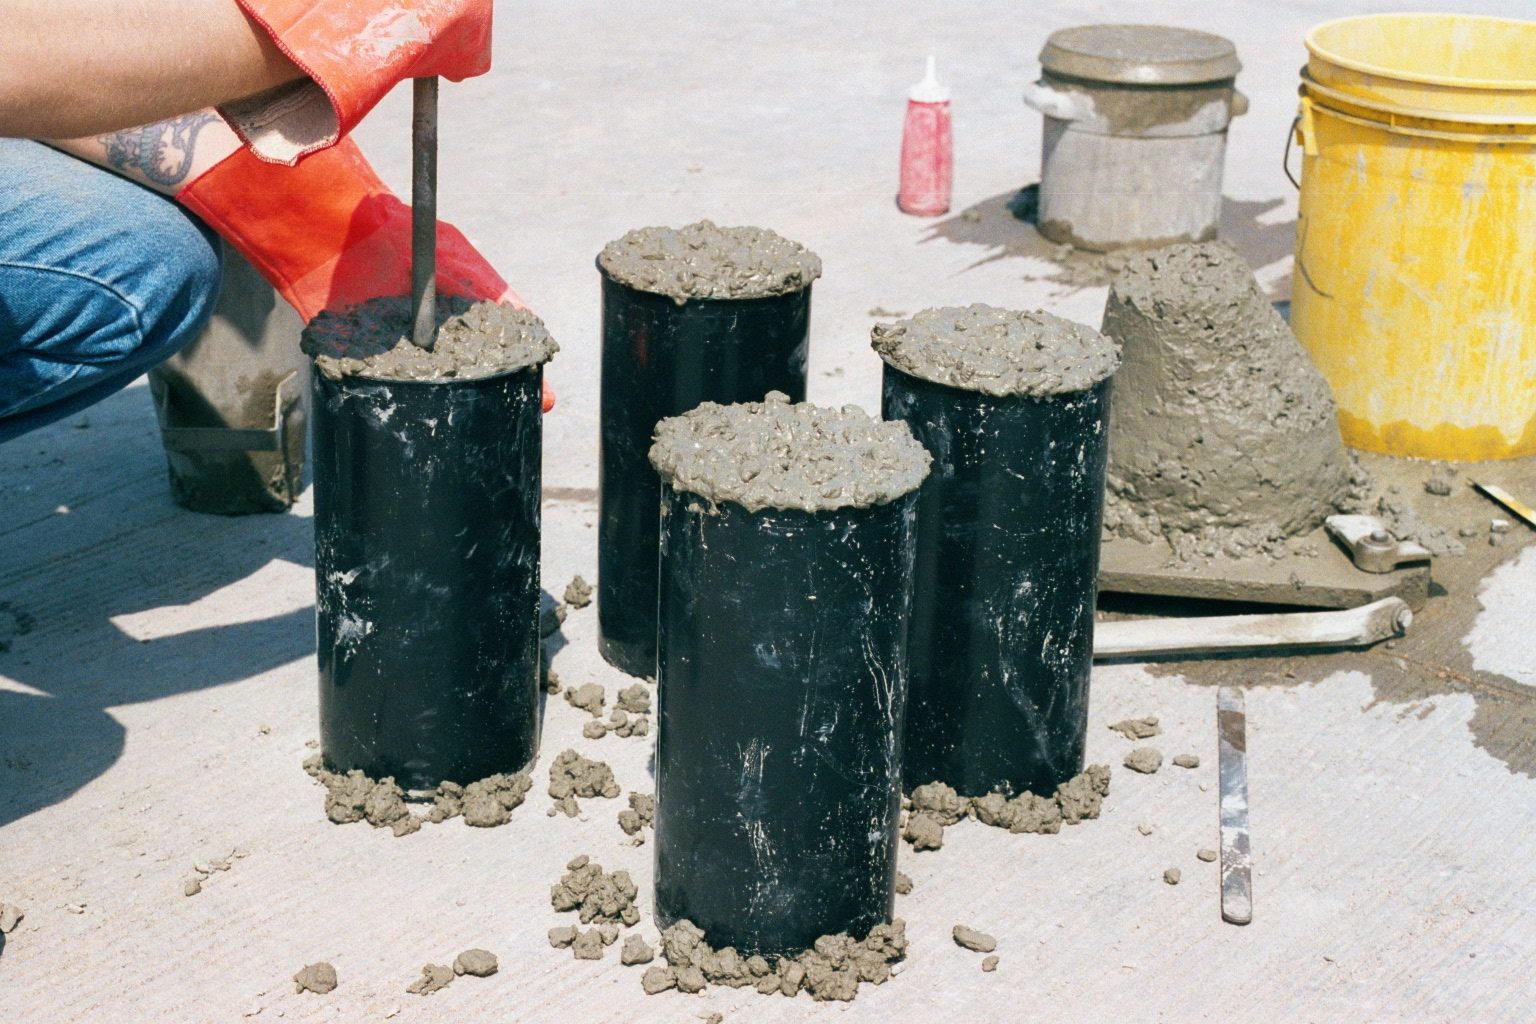 A construction worker is creating concrete samples to test.